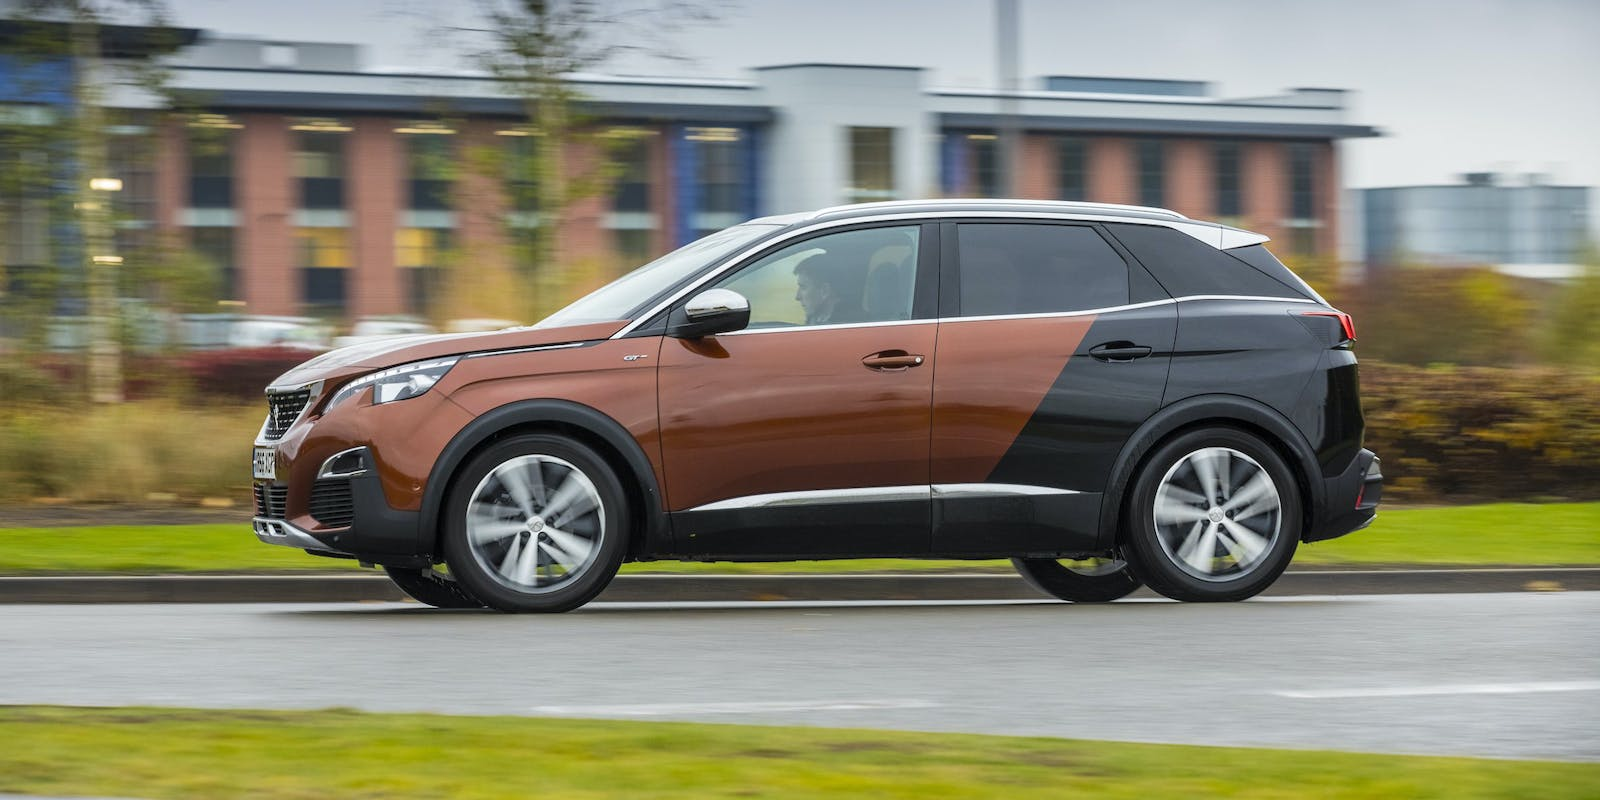 Cheap Peugeot 3008 Deals Metrostyle Coupons 40 Off 207 Towbar Wiring On Download Wirning Diagrams